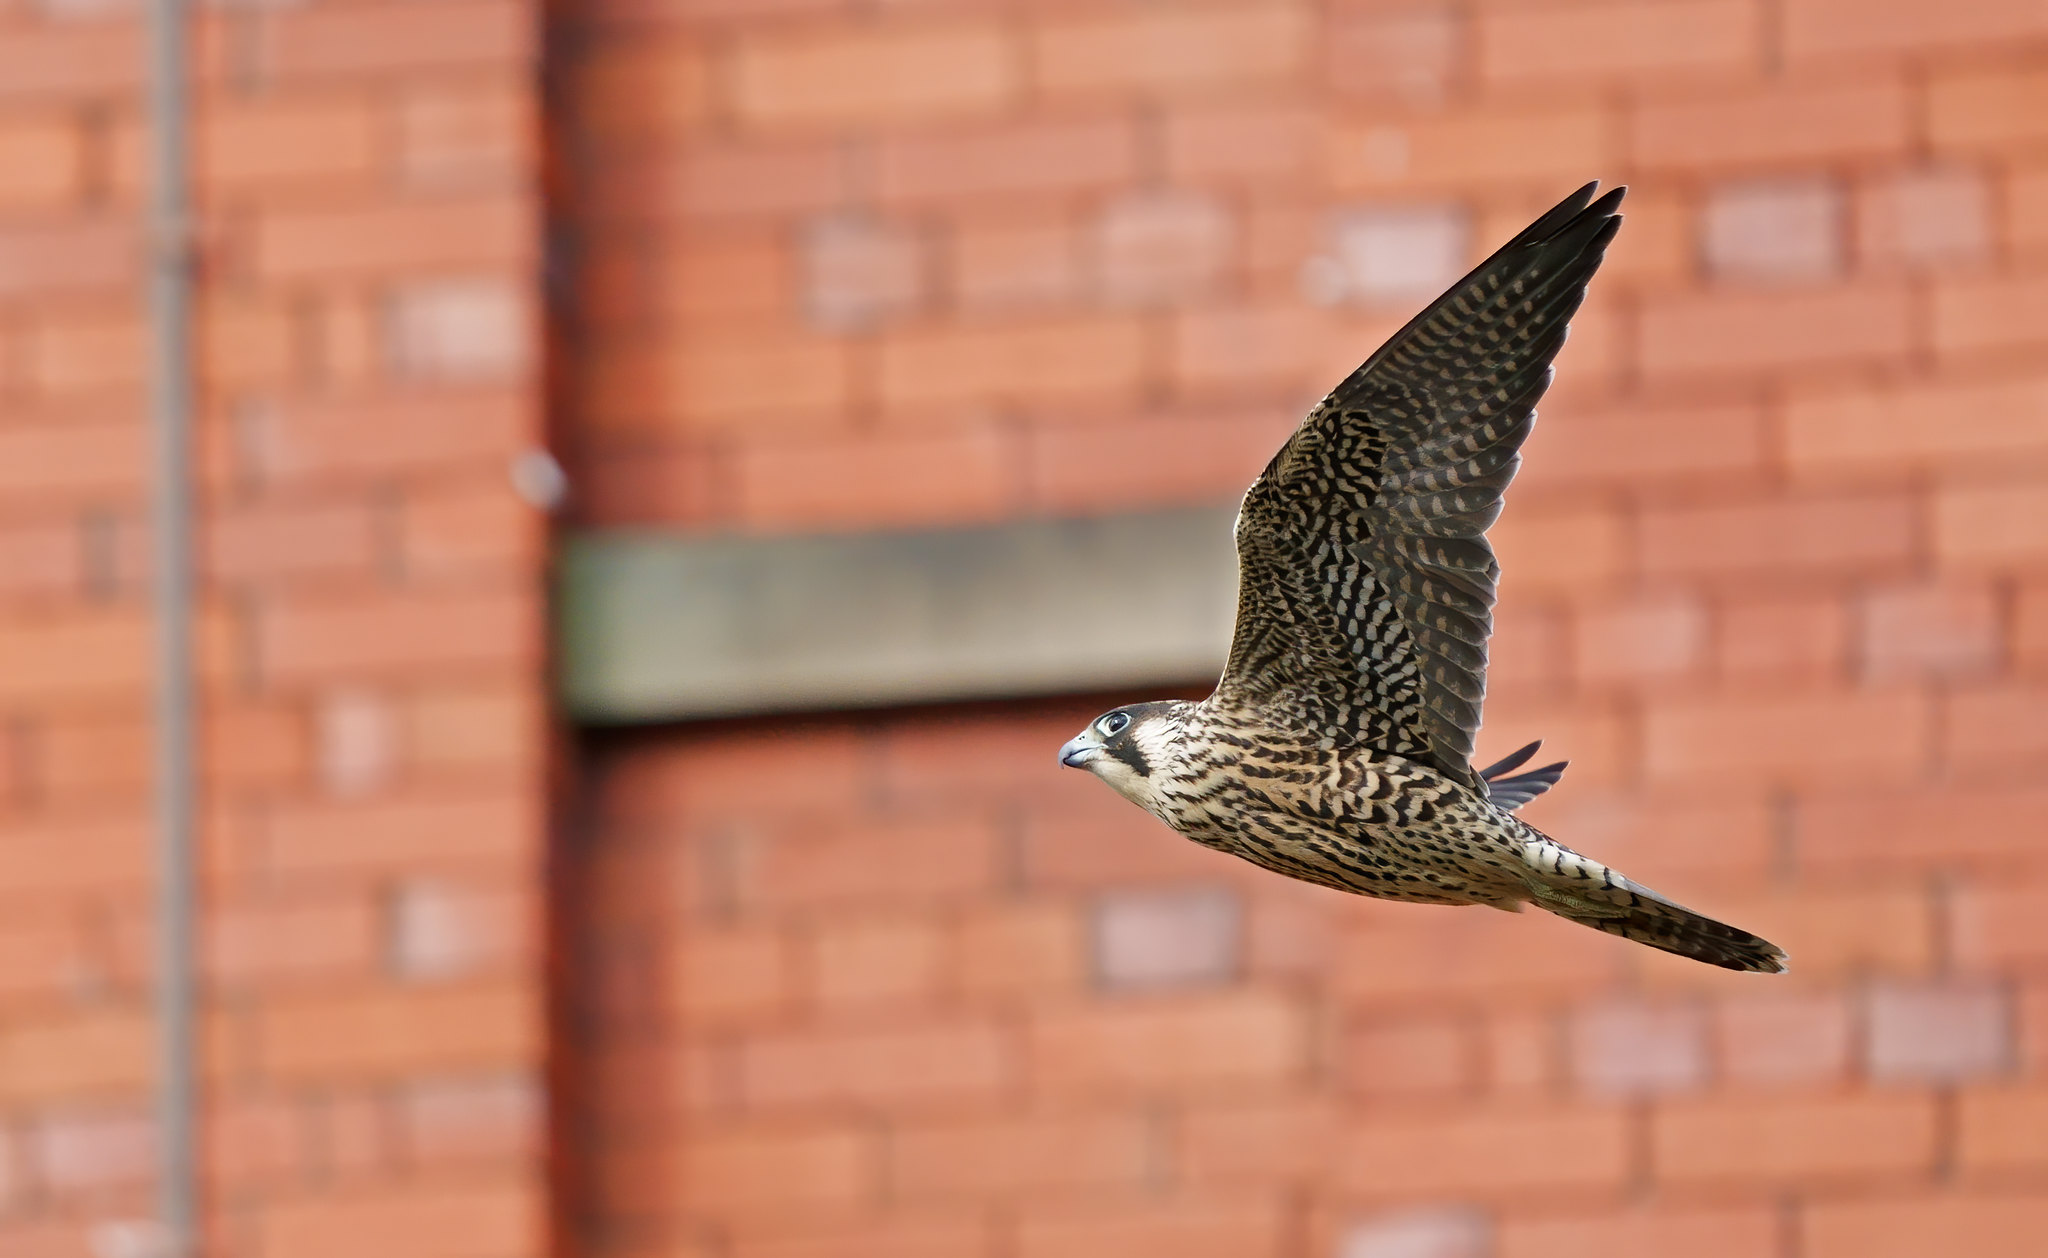 Peregrine Falcon - still not keen on the brickwork background.